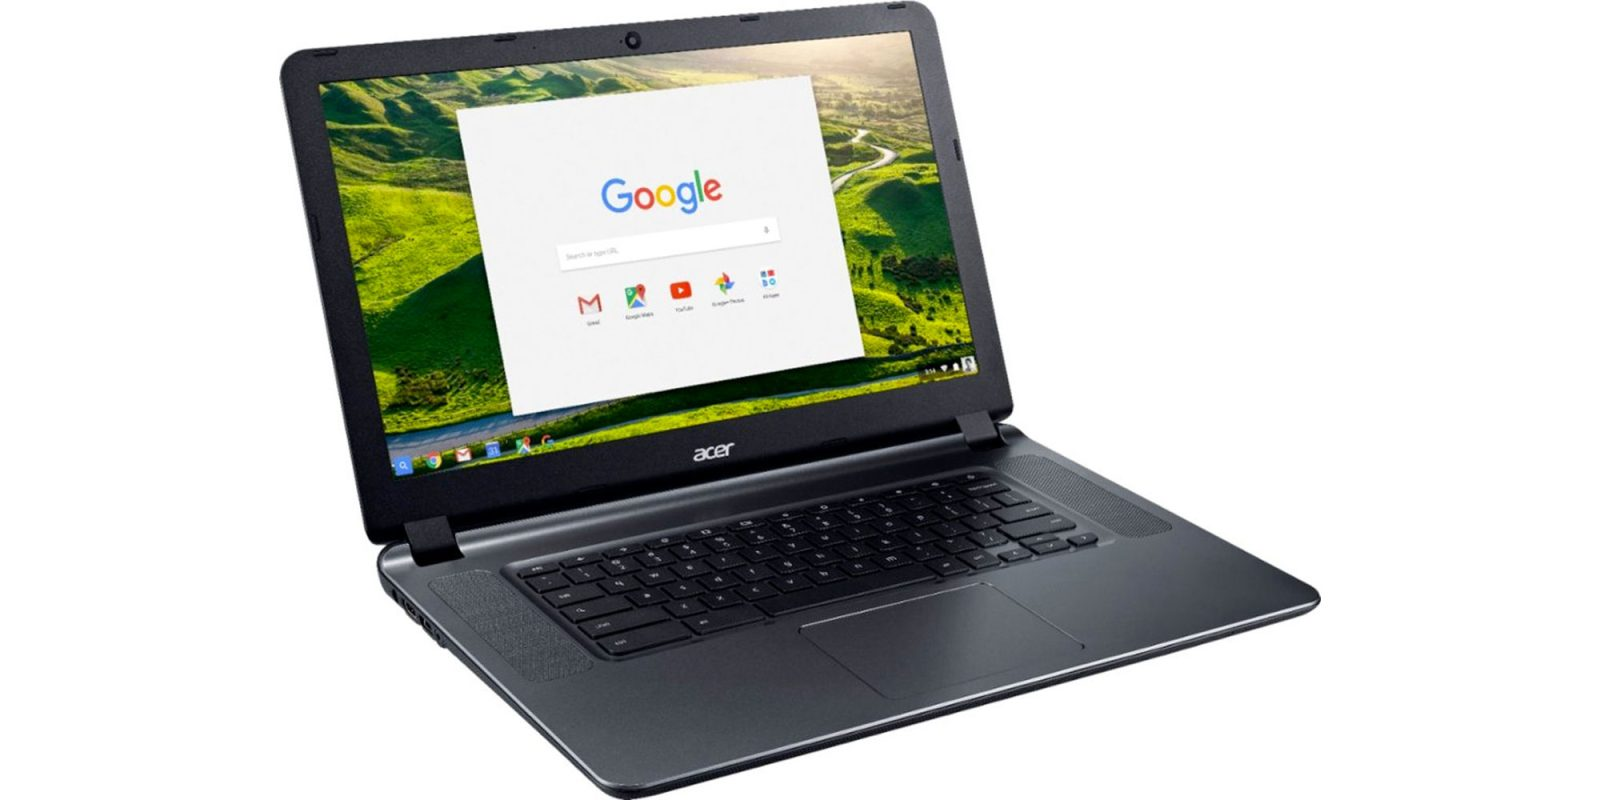 Acer's 15-inch Chromebook has 12-hour battery and 3-months of Disney+ at $149